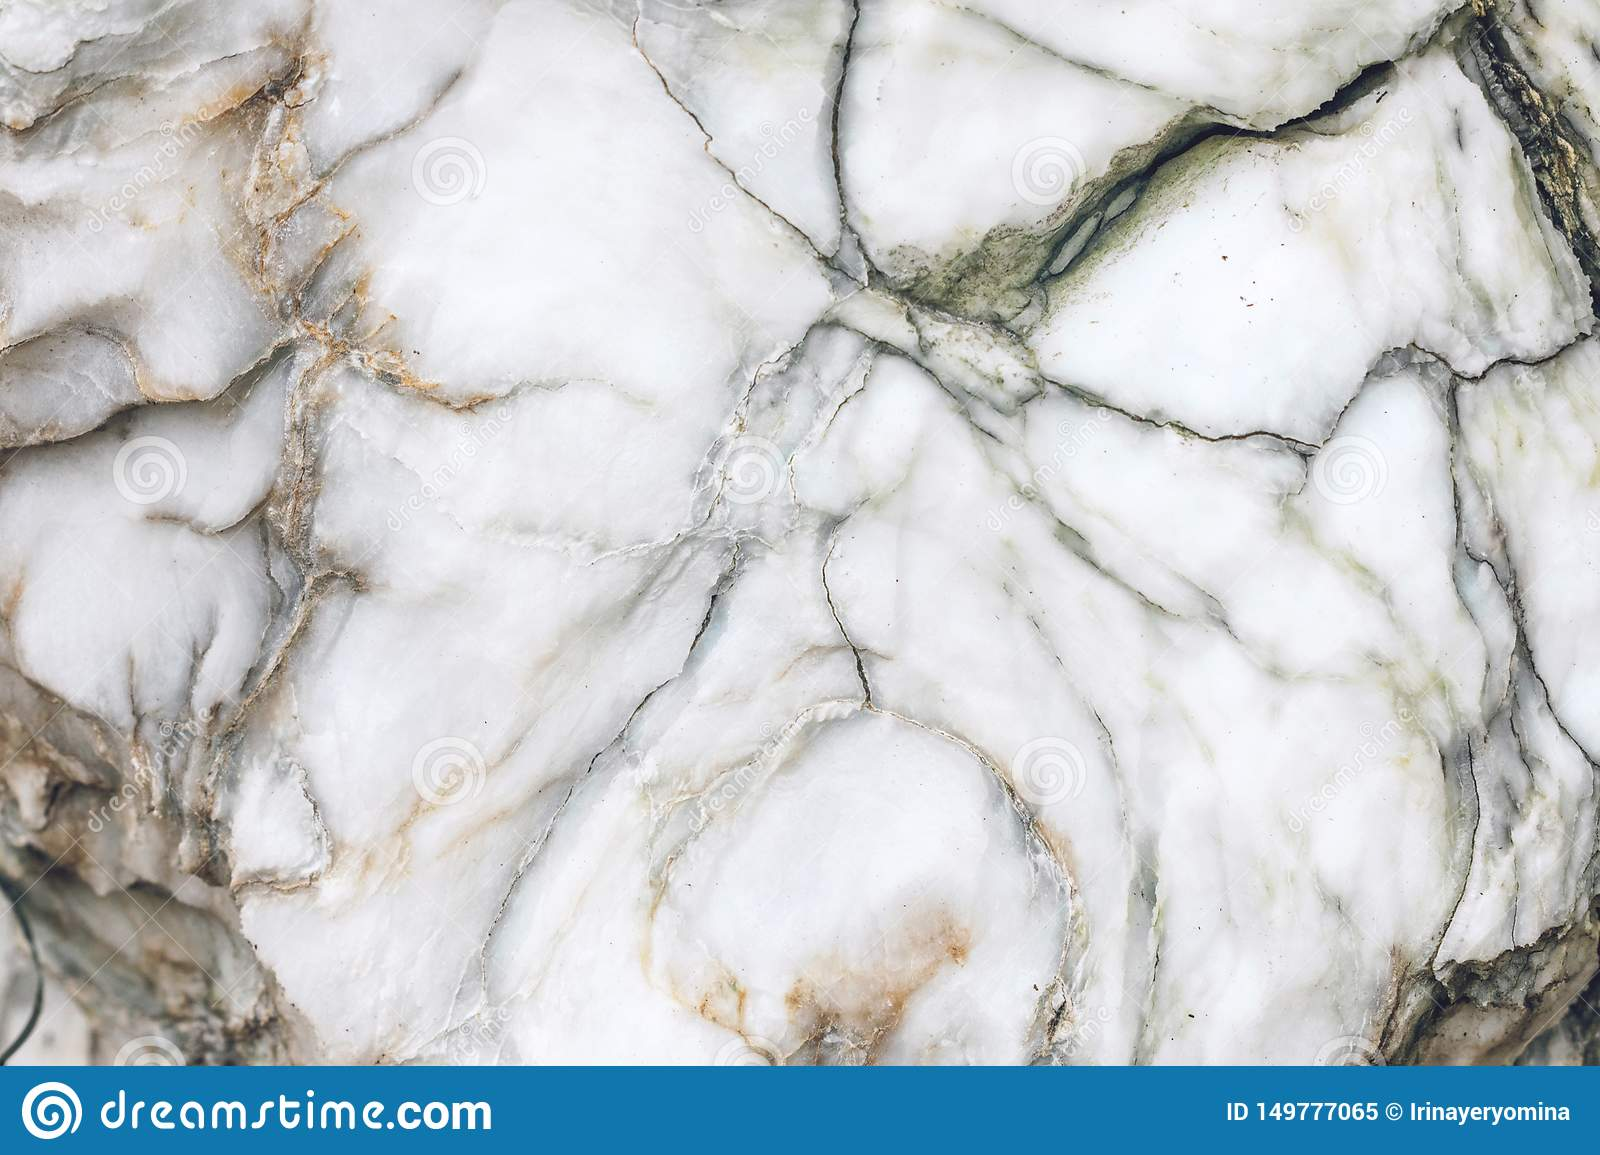 Natural Raw Marble Texture Marble Wallpaper Background White Brown And Grey Stone Texture For Design Pattern Artwork Stock Image Image Of Elegance Backdrop 149777065